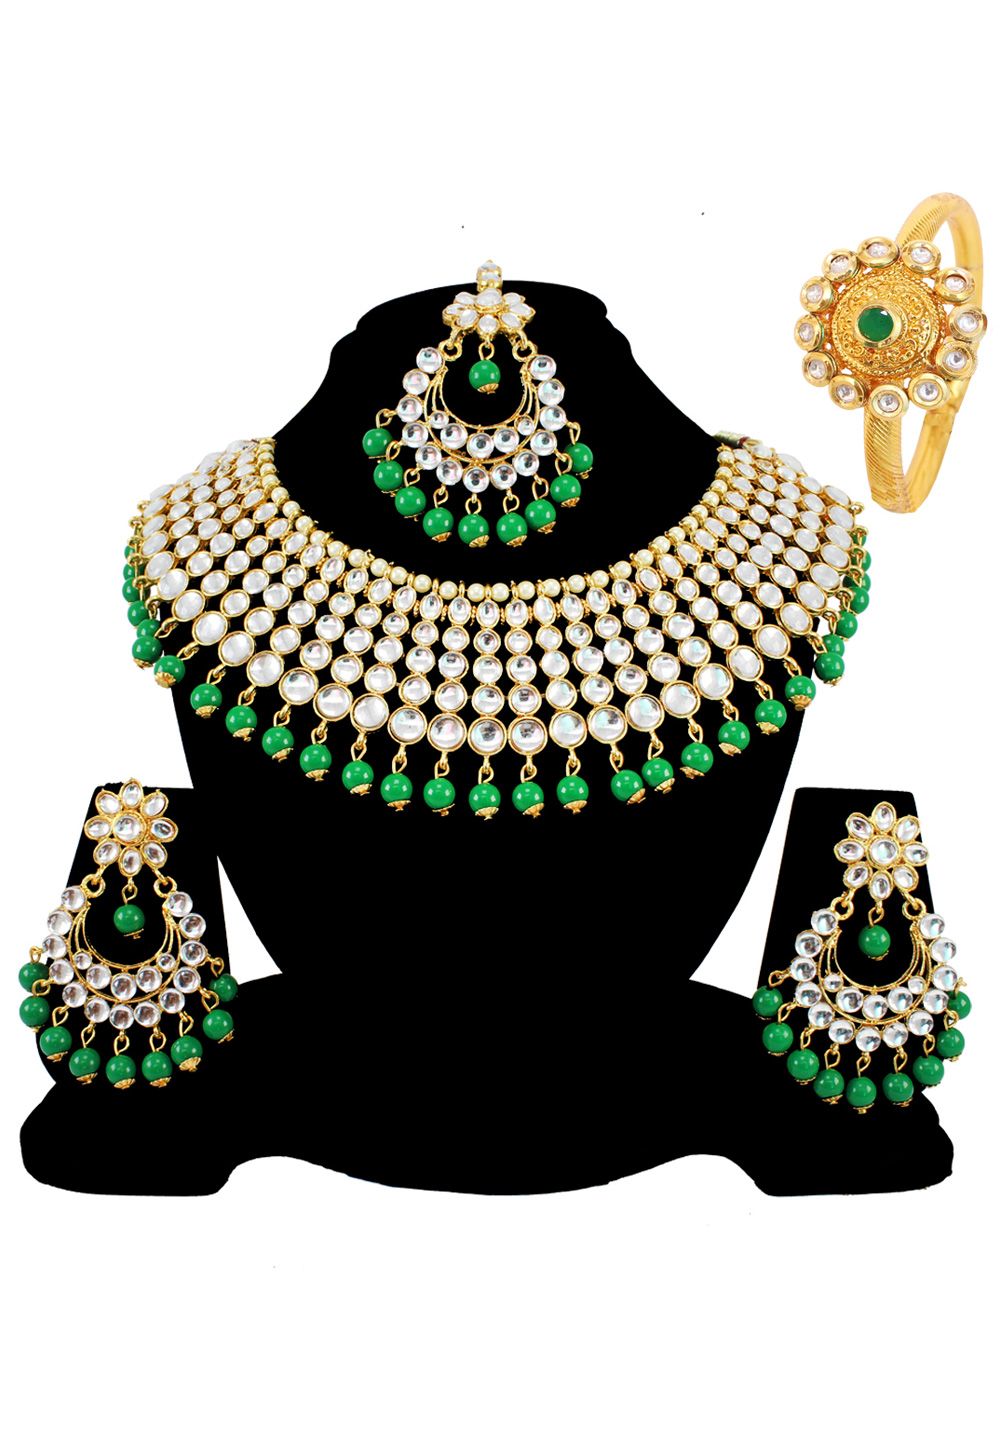 White Alloy Necklace Set Earrings and Maang Tikka 177890